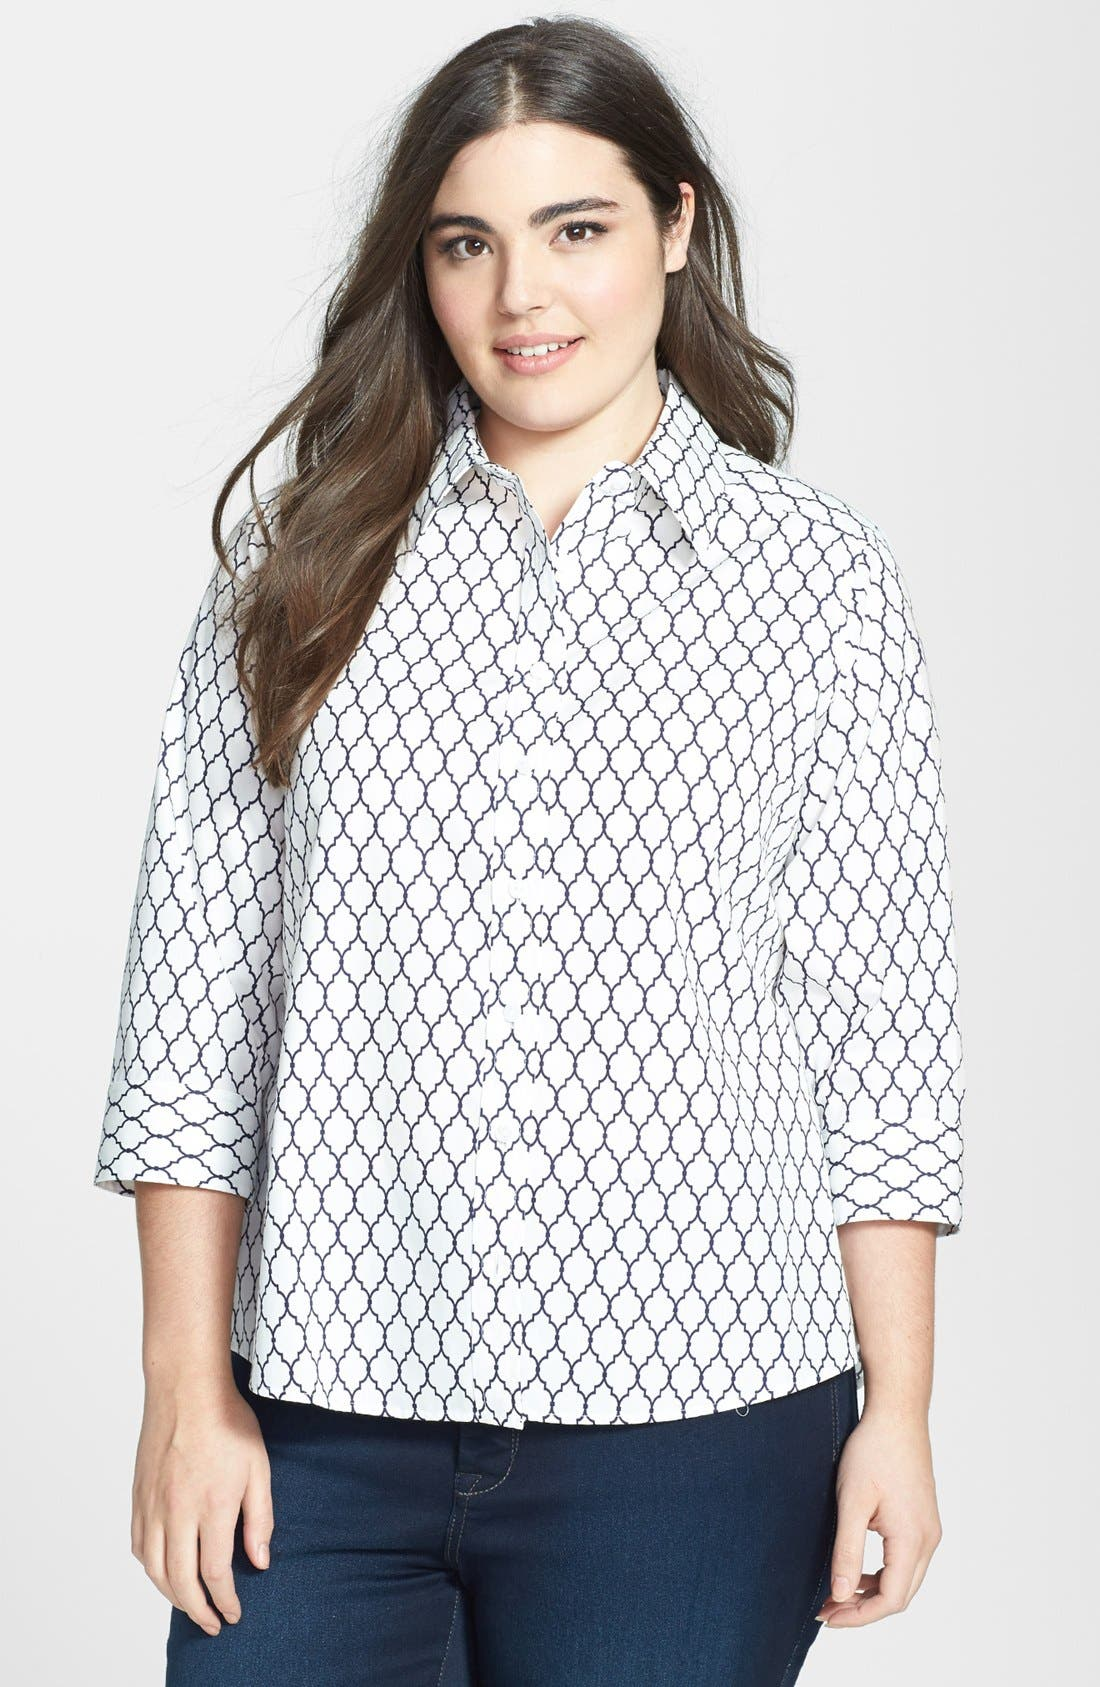 Alternate Image 1 Selected - Foxcroft Lattice Print Shaped Shirt (Plus Size)